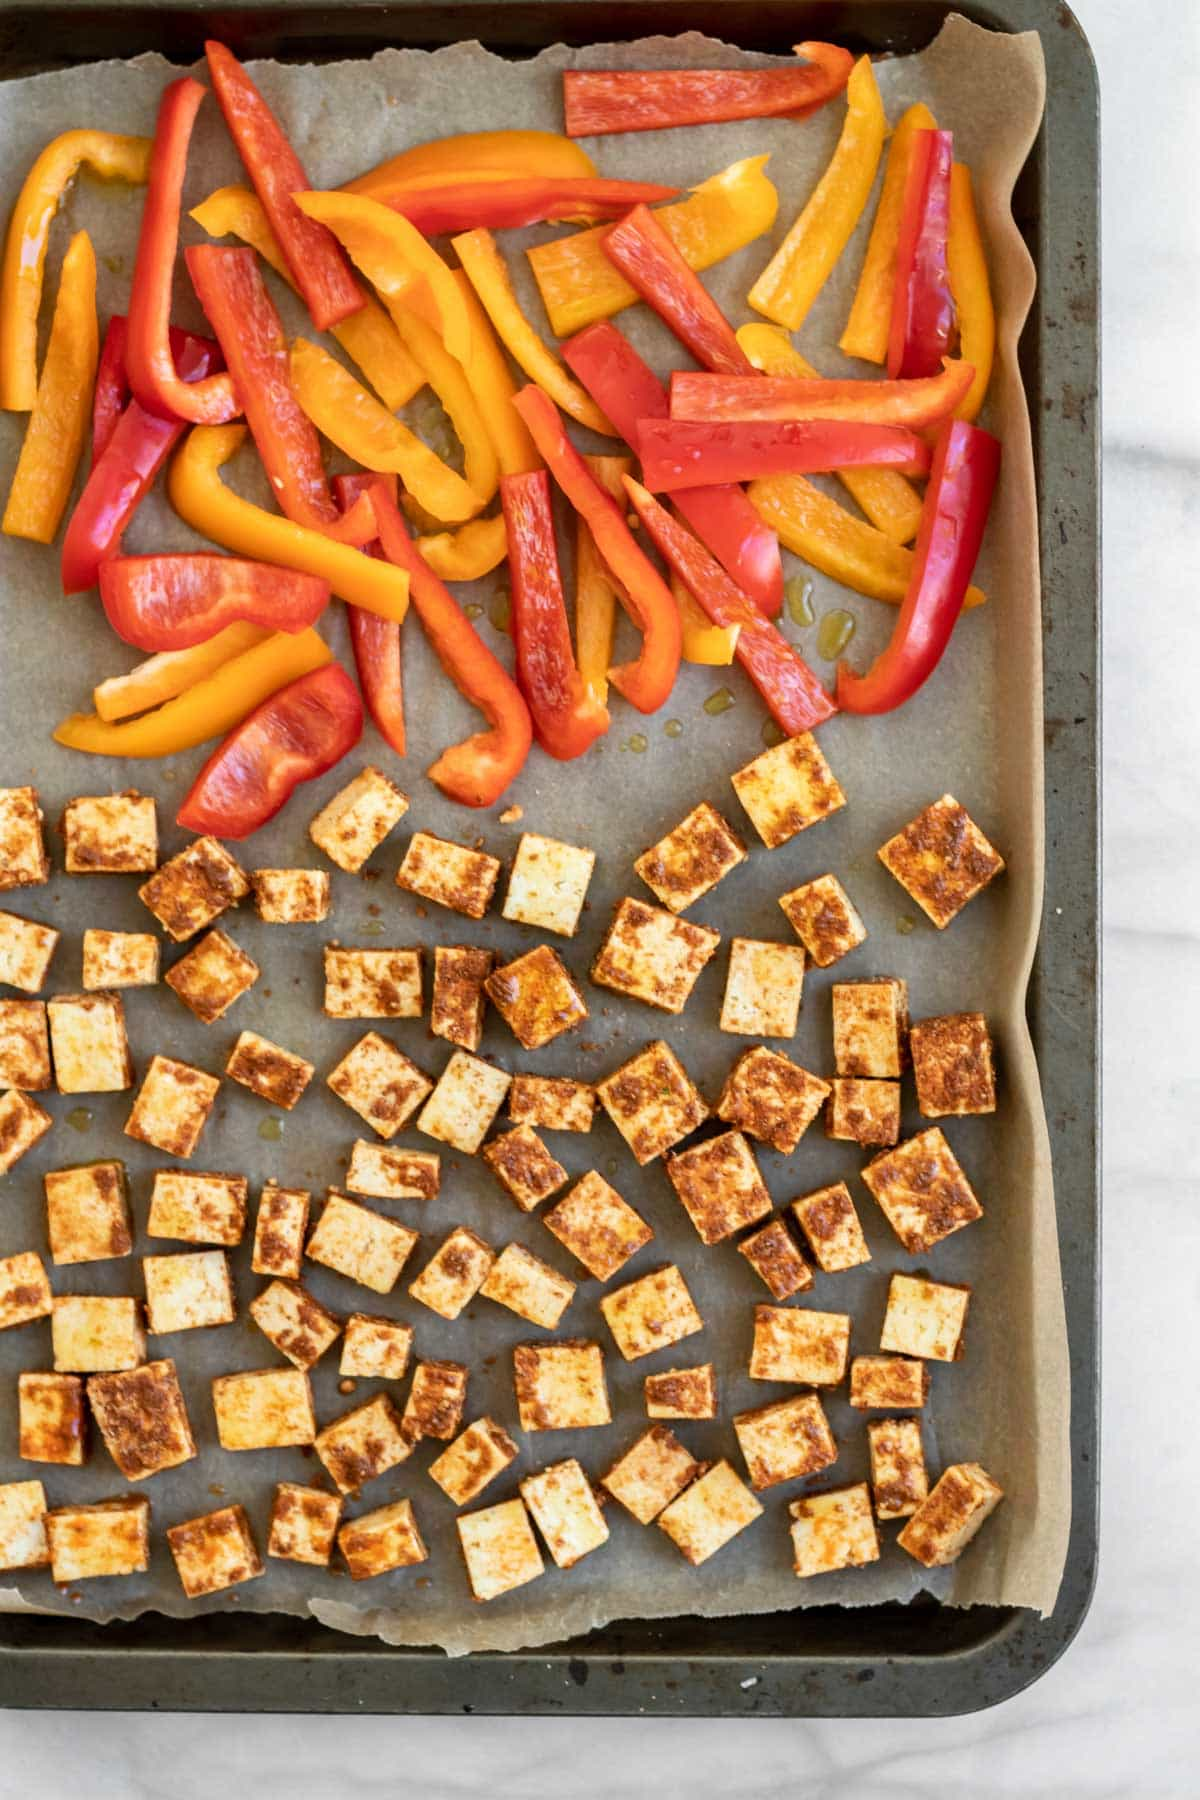 Tofu and peppers on a baking pan before going in the oven.